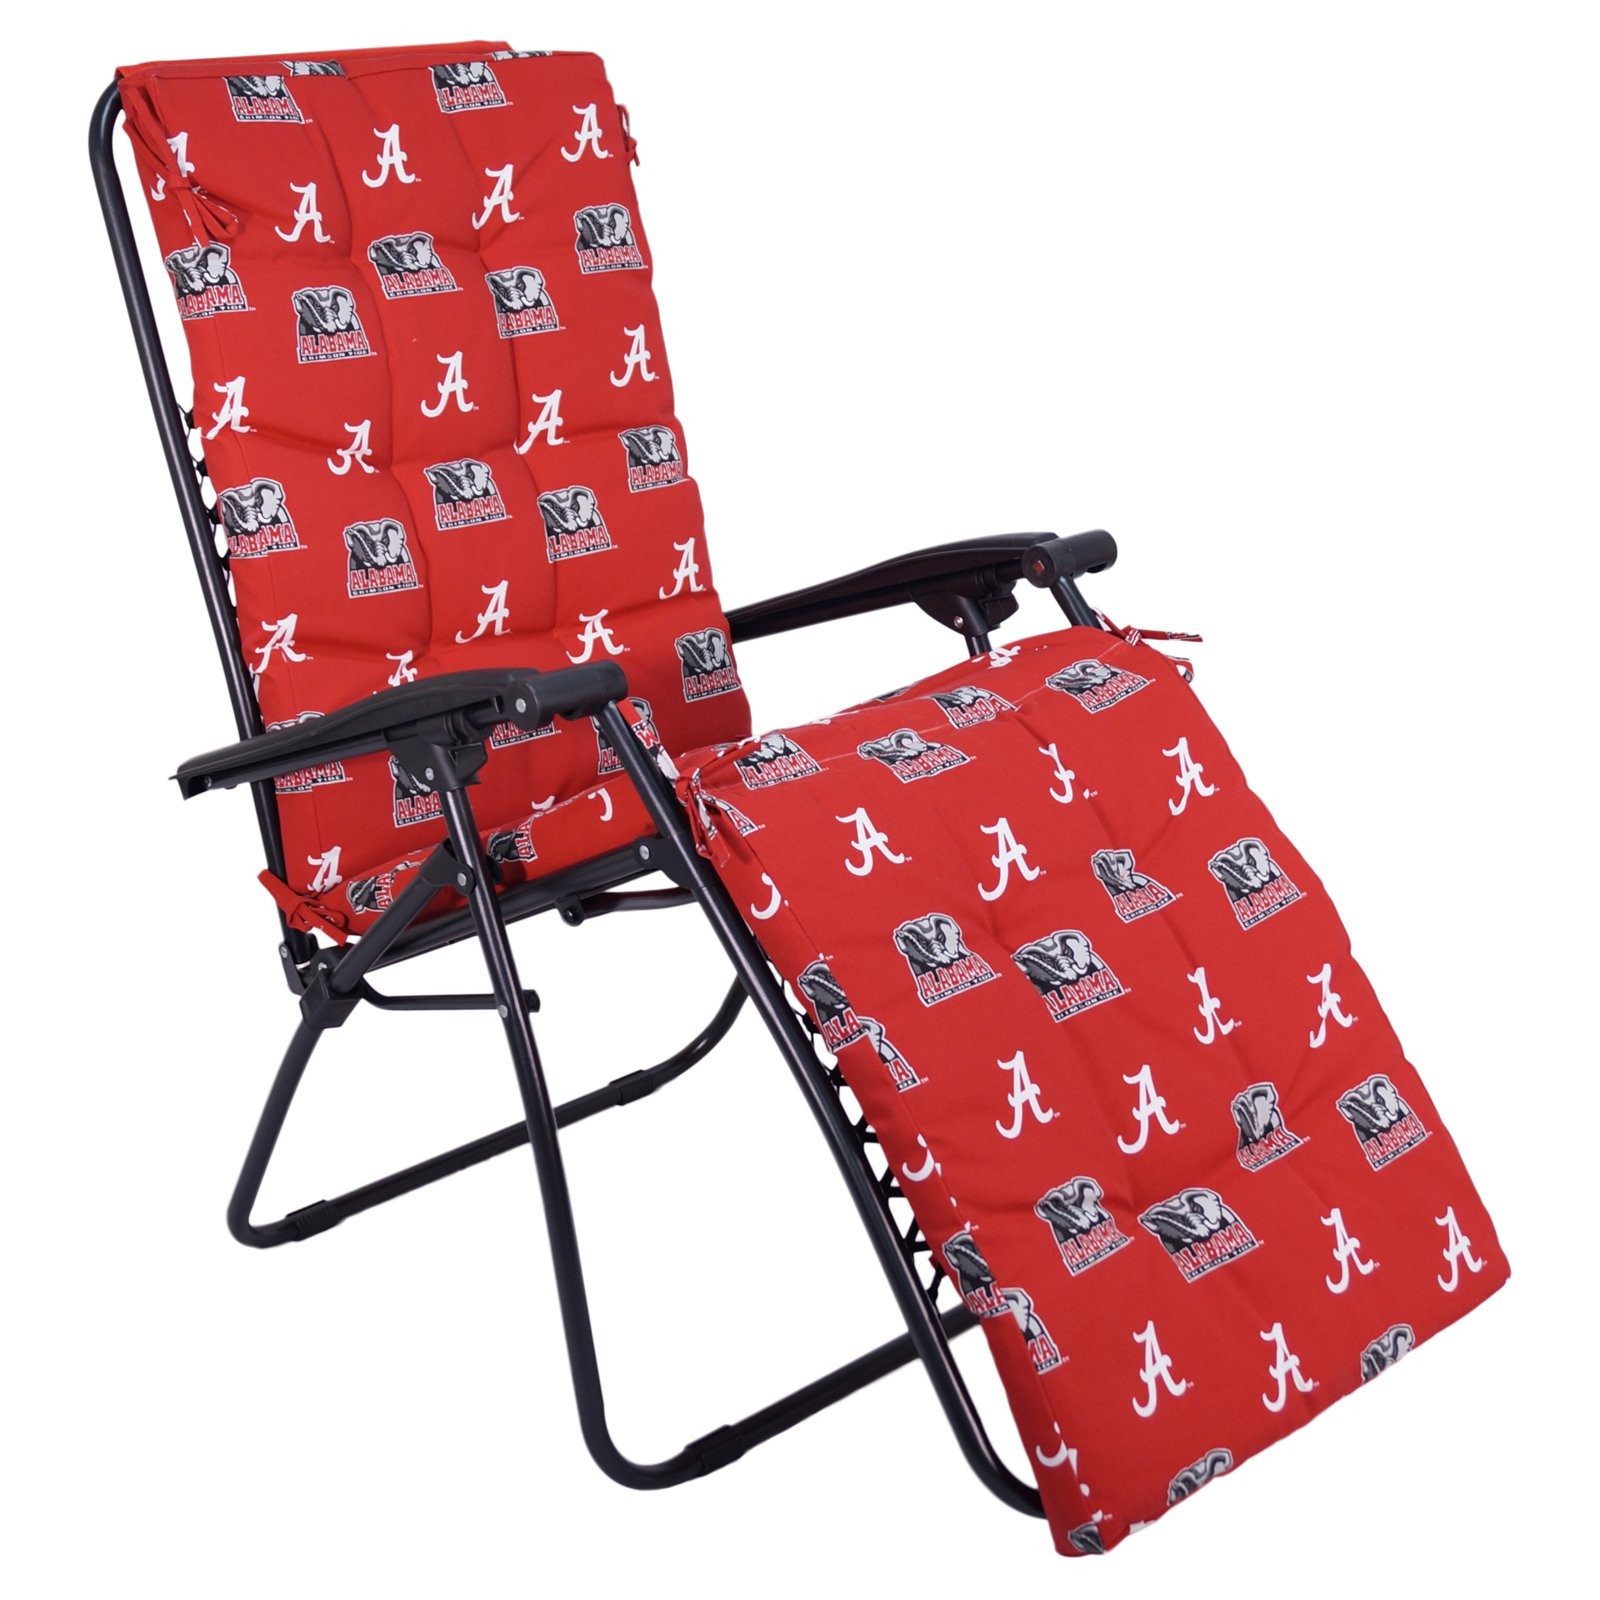 College Covers NCAA Alabama Outdoor Chaise Lounge Cushion